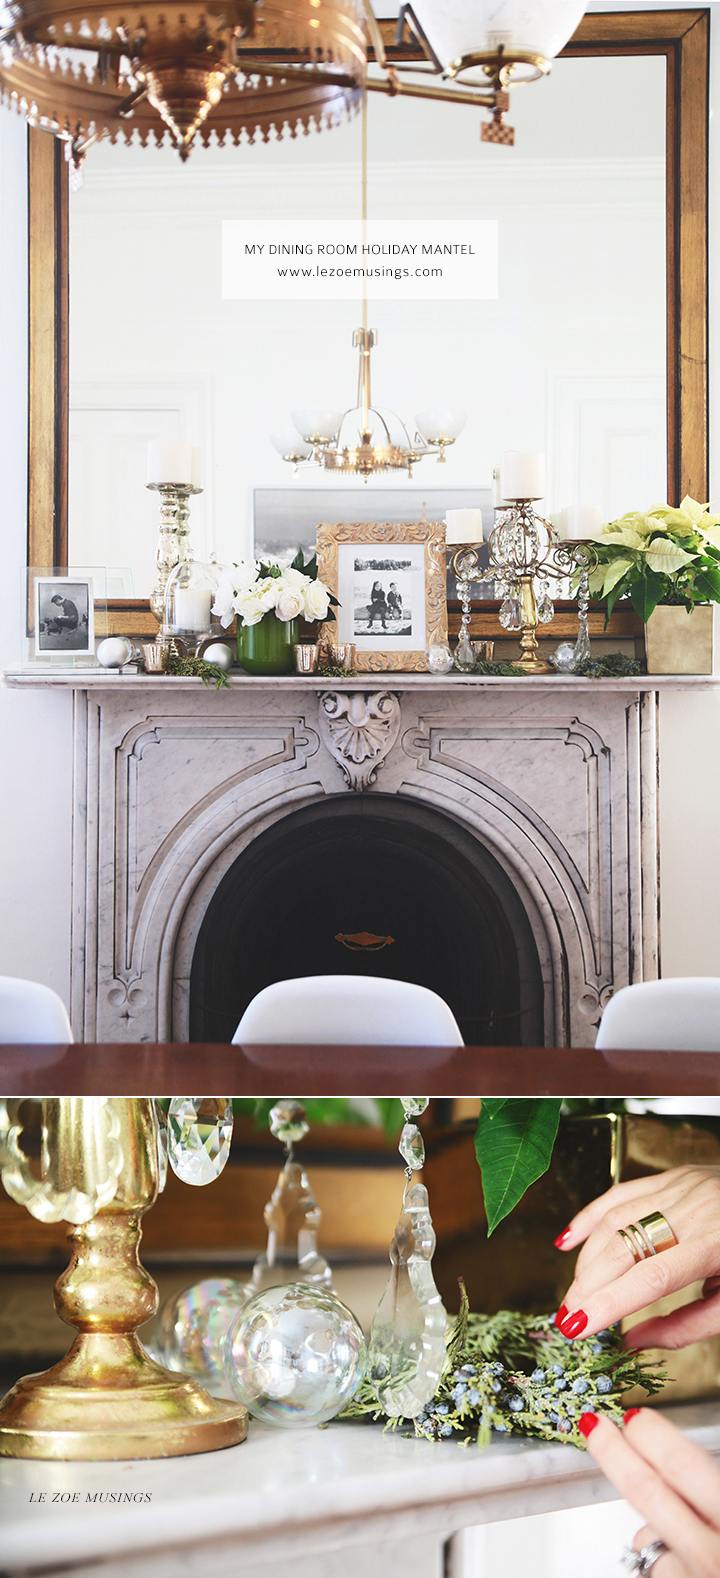 My Dining Room Holiday Mantel by Le Zoe Musings2